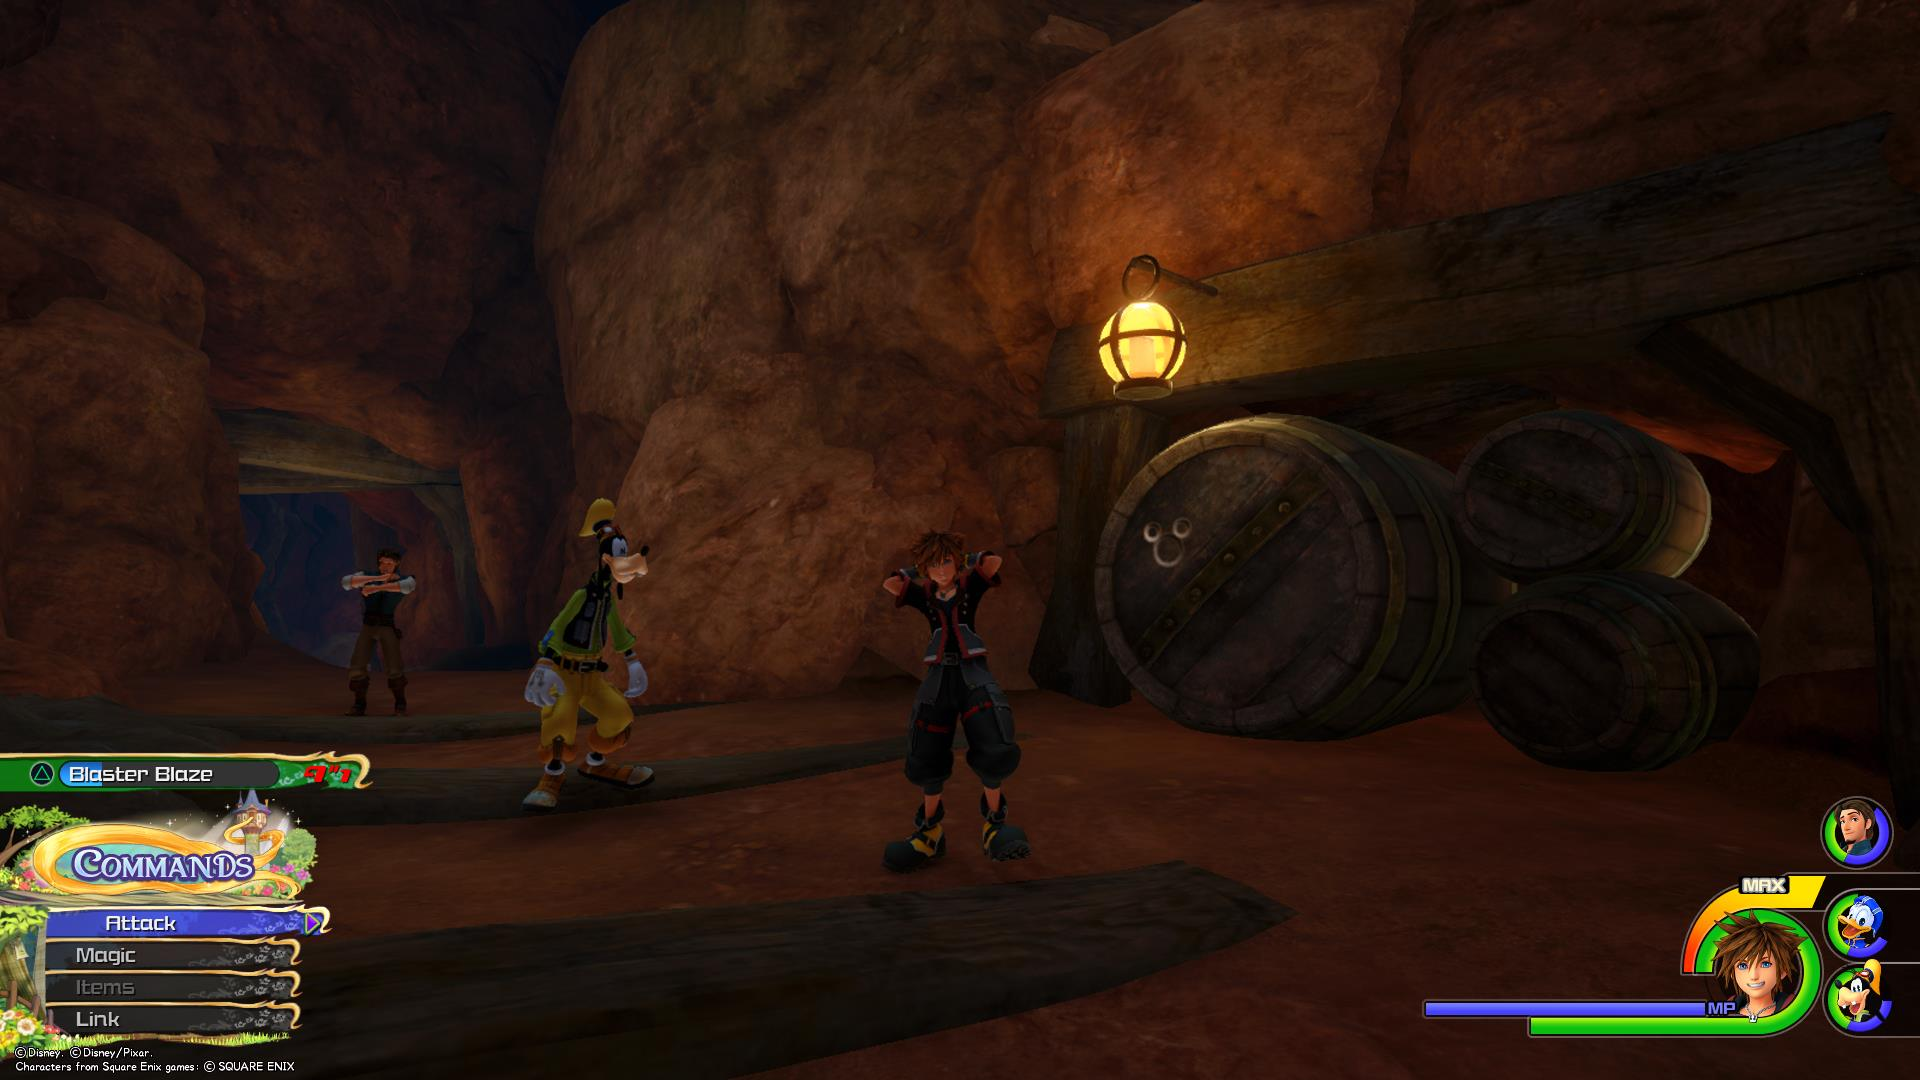 Emblem 3 - Where to find Kingdom of Corona Lucky Emblems in Kingdom Hearts 3